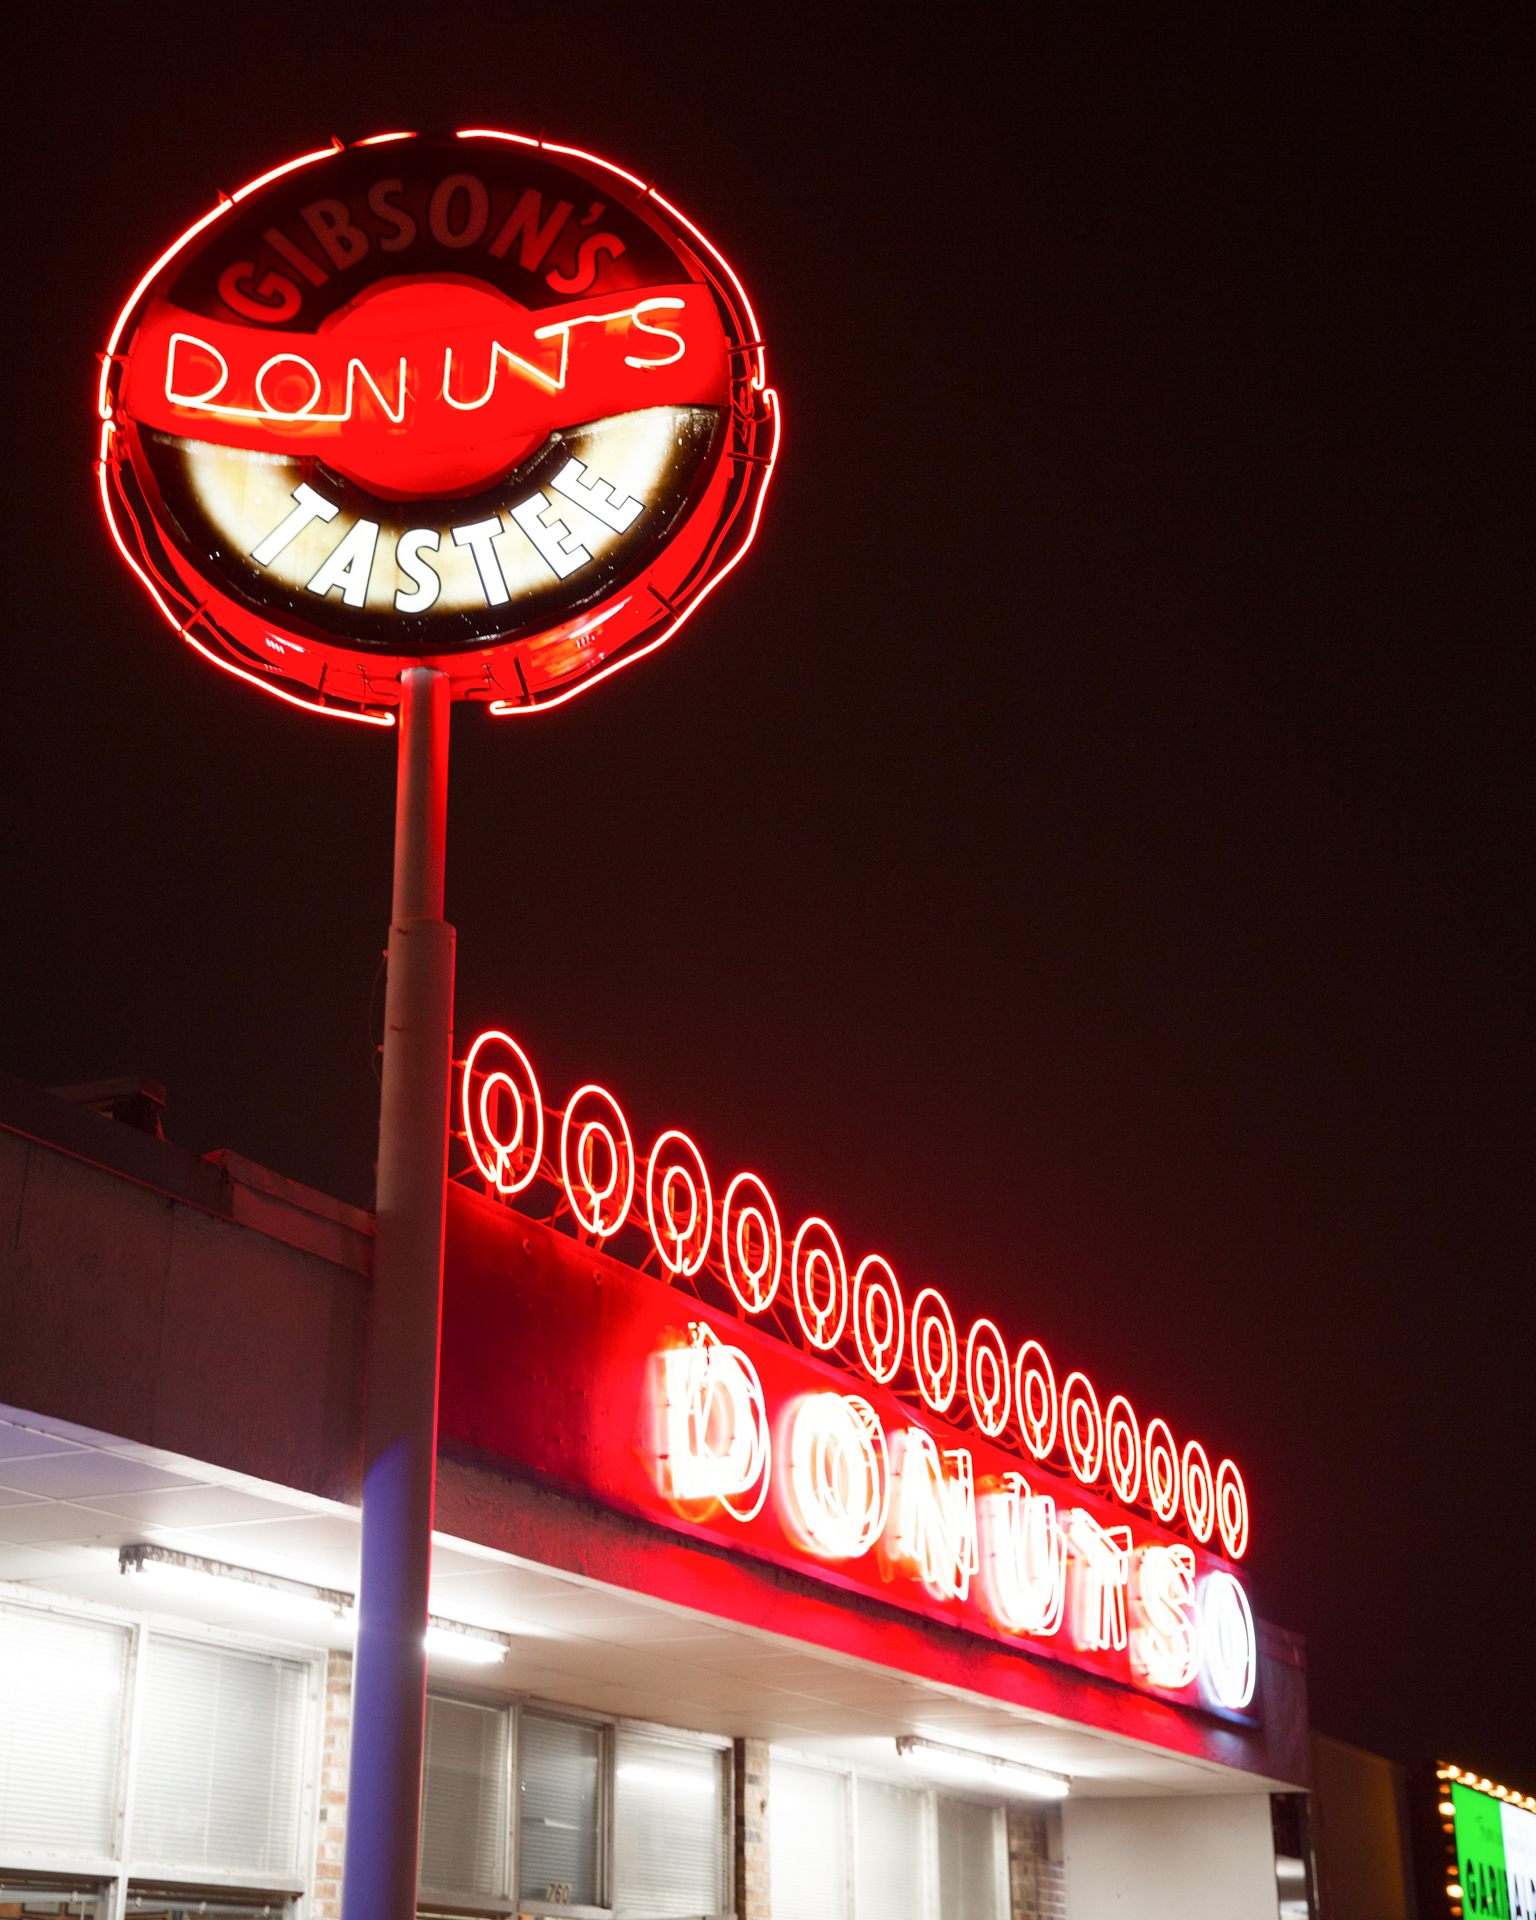 gibsons donuts in memphis